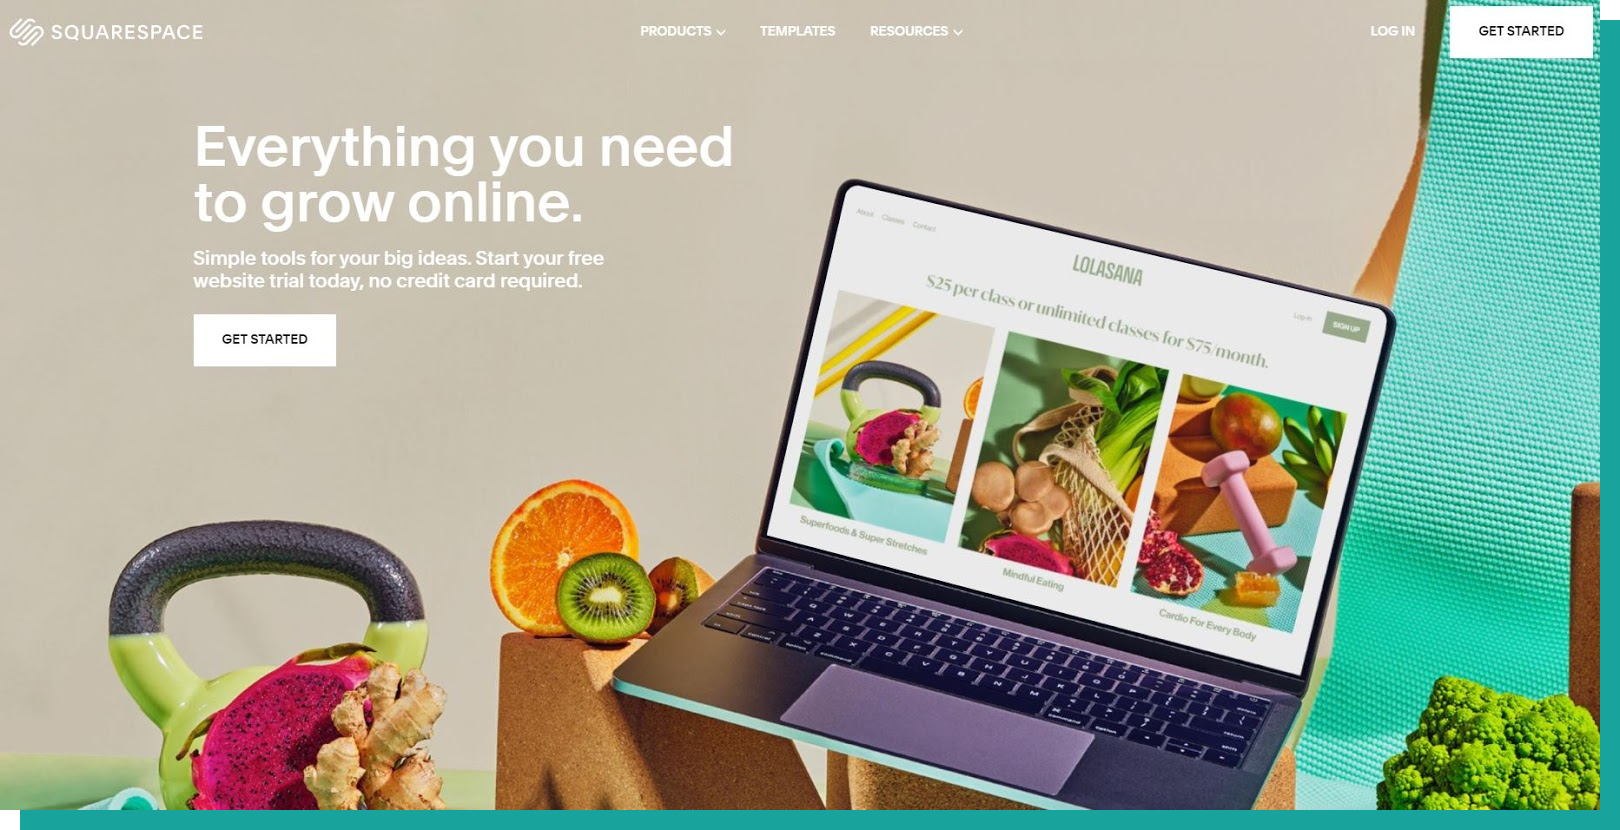 """An image of the Squarespace homepage. The main text reads: """"Everything you need to grow online."""" There is a laptop with fitness classes advertised on screen, surrounded by healthy fruits, vegetables, and a green kettlebell."""